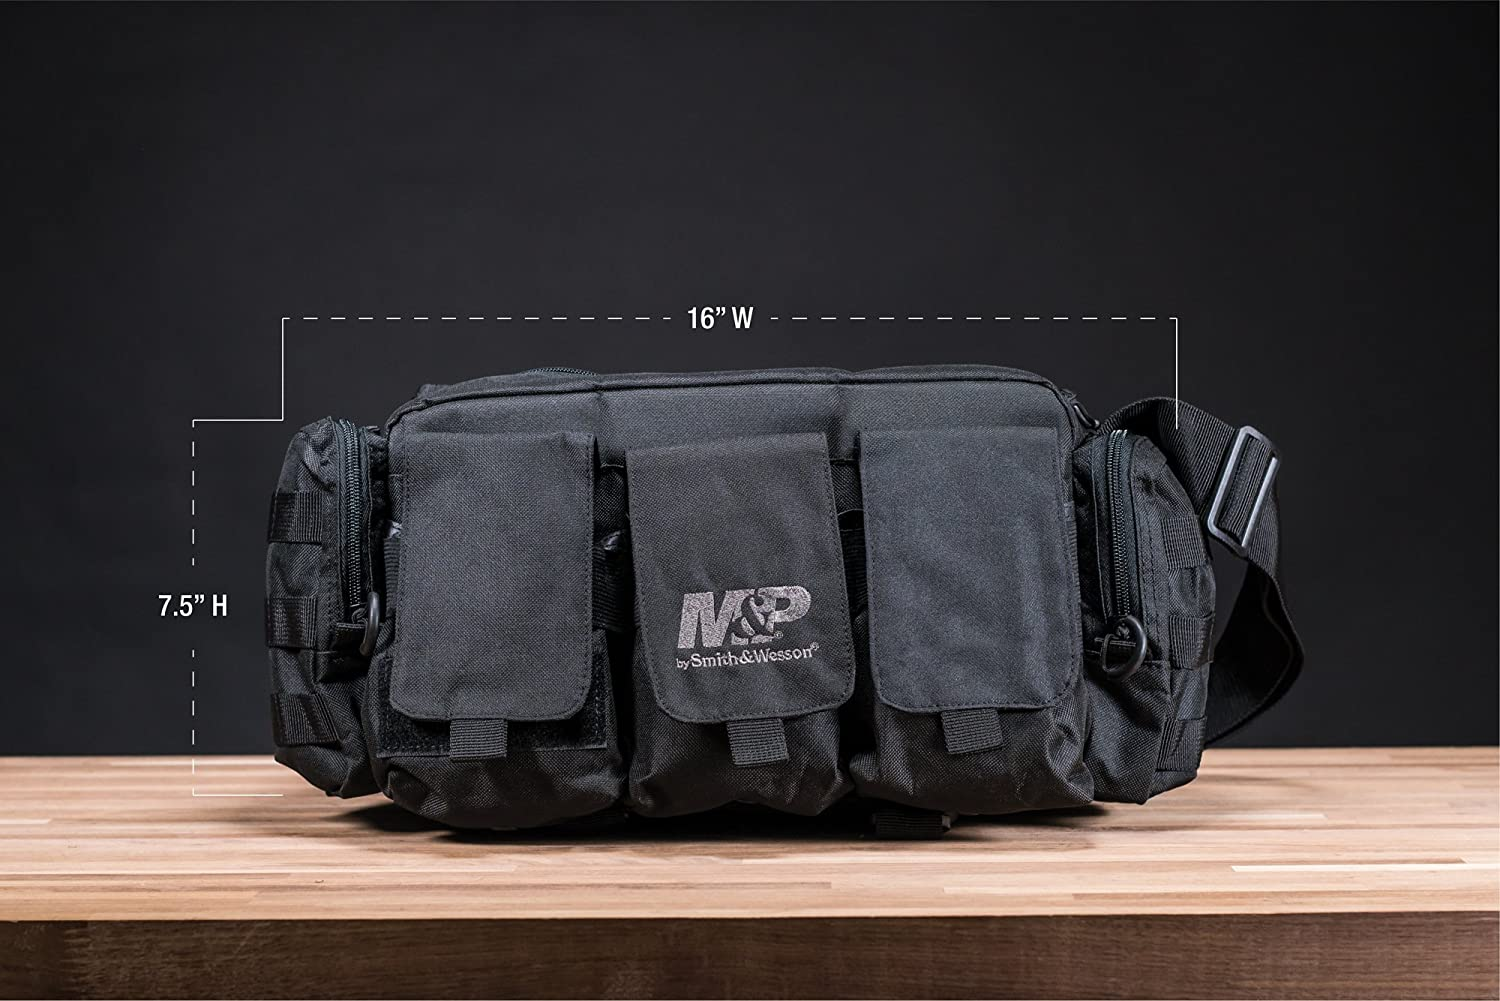 Smith Wesson M P Anarchy Bug Out Bag with Ballistic Fabric Construction, External Pockets and MOLLE for Emergency Prep, Disaster Survival and Shooting